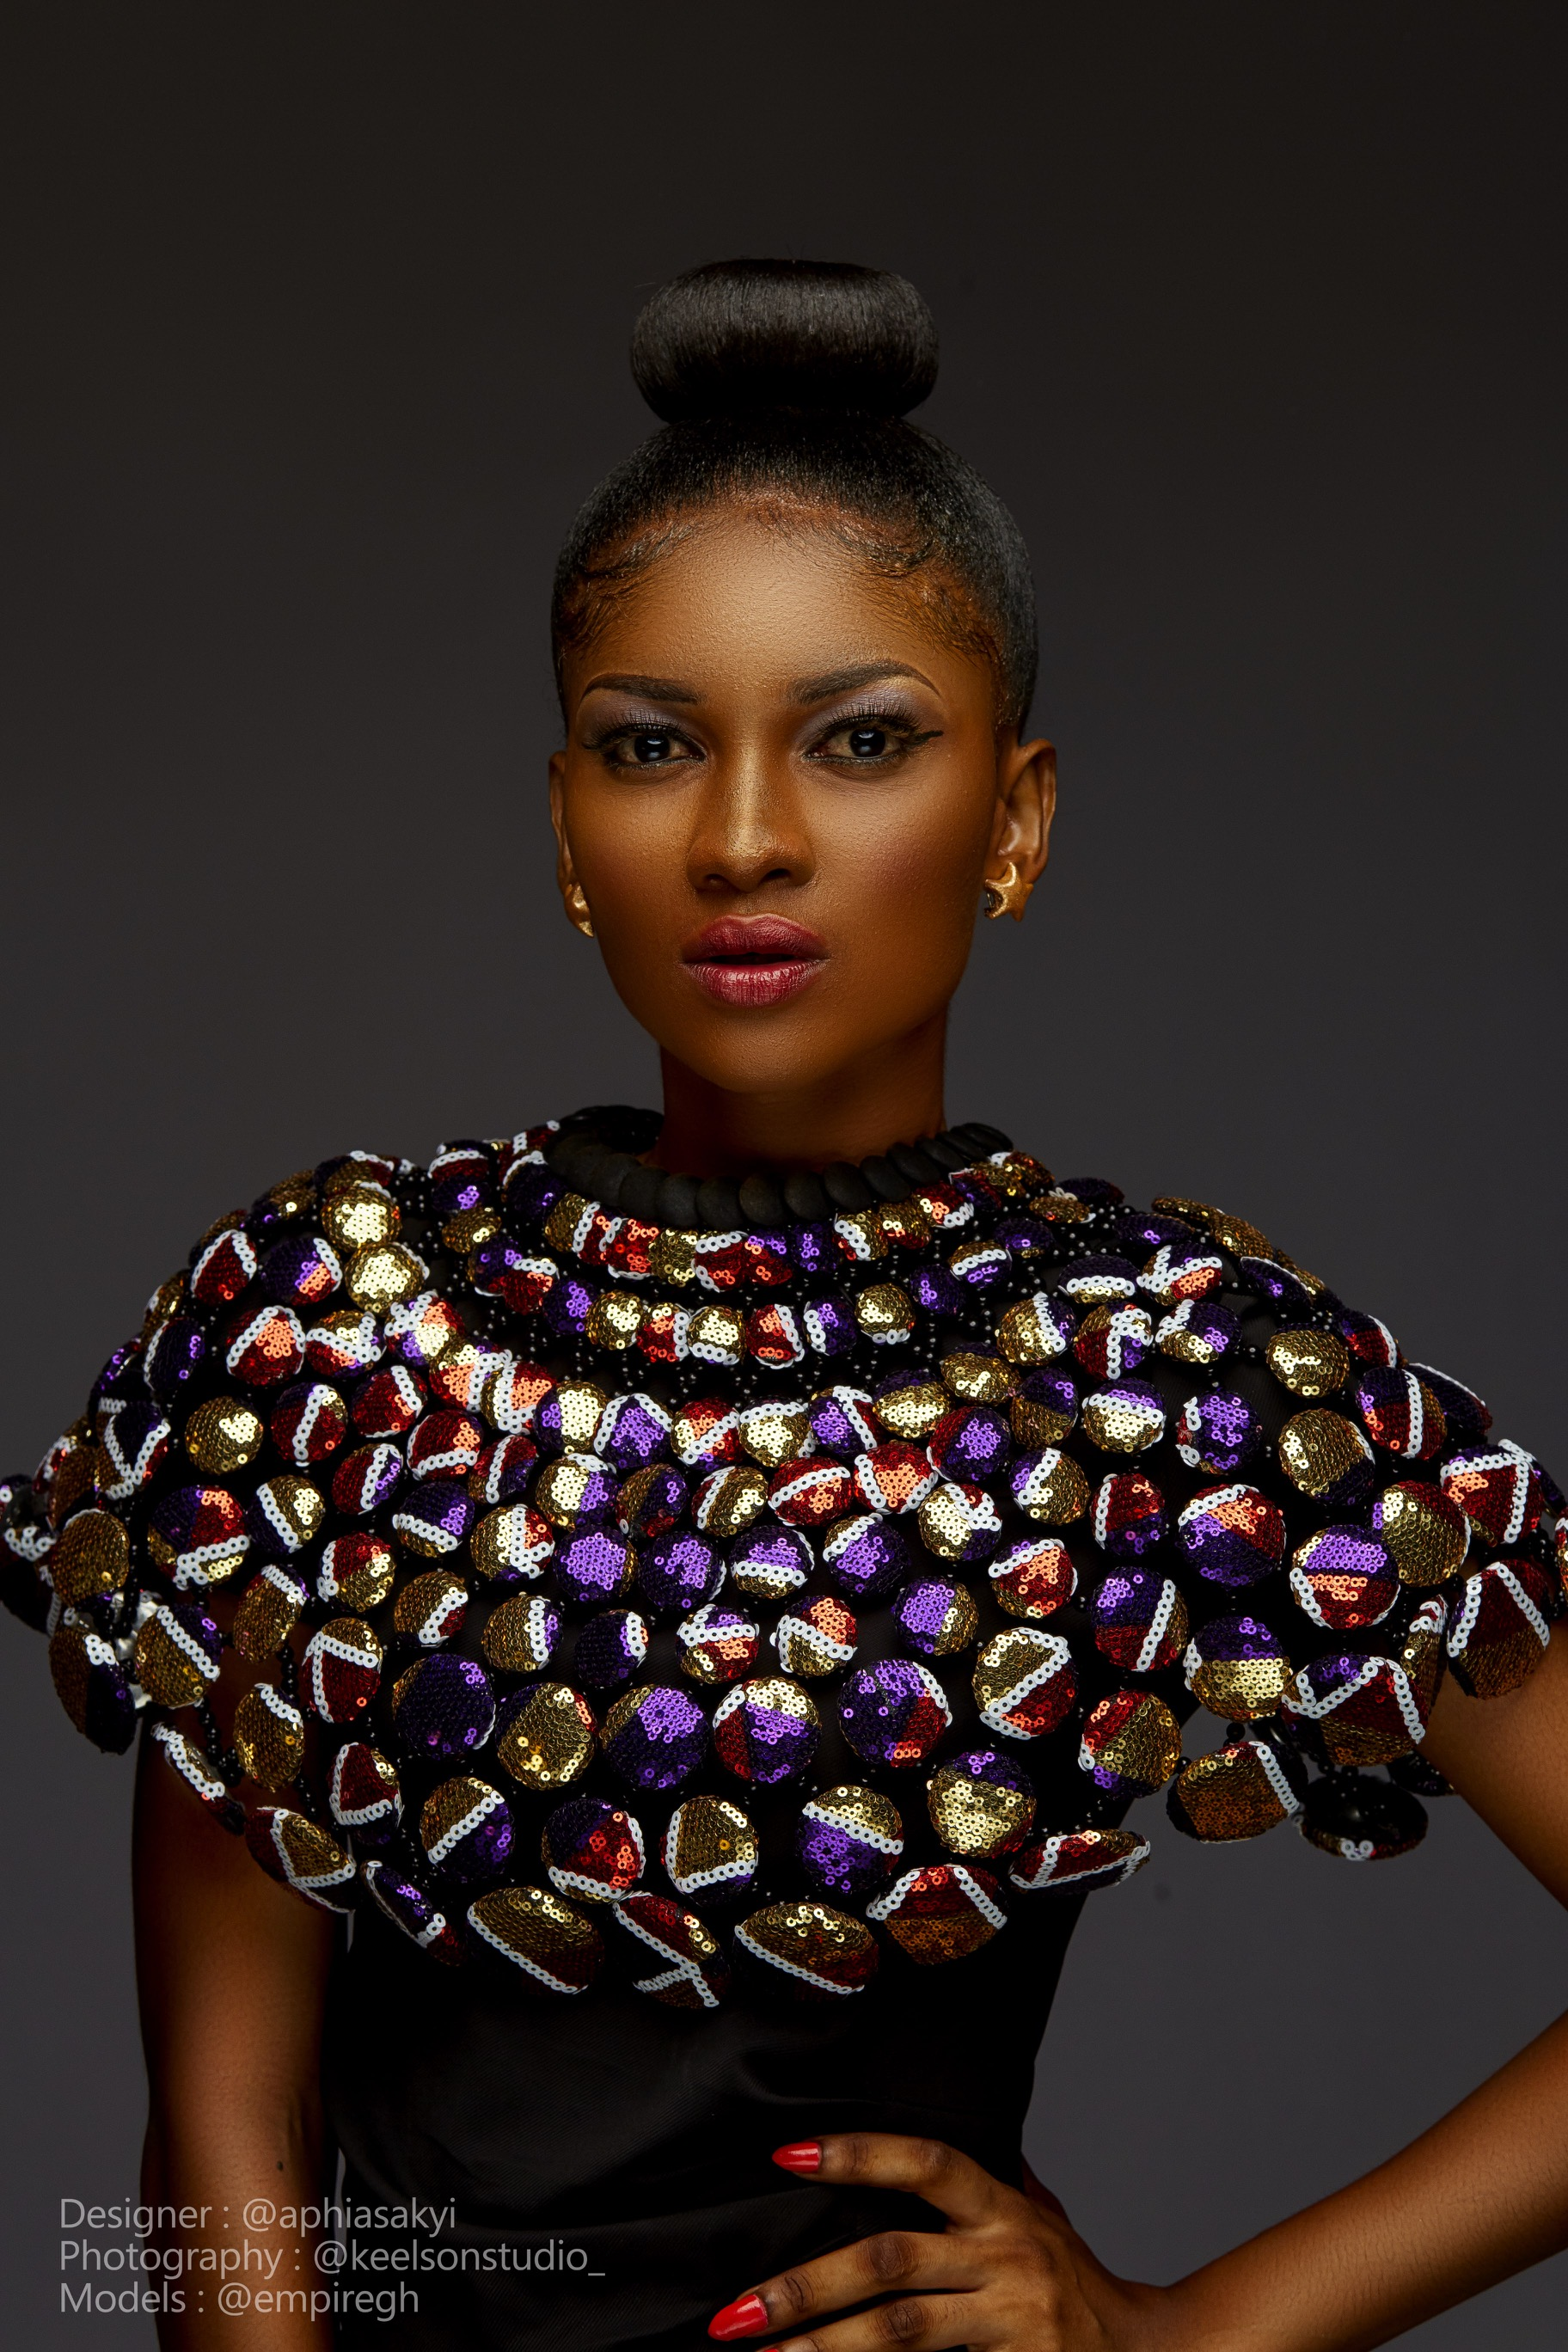 ghanaian-accessories-brand-aphia-sakyi-new-collection-is-intricately-afrocentric